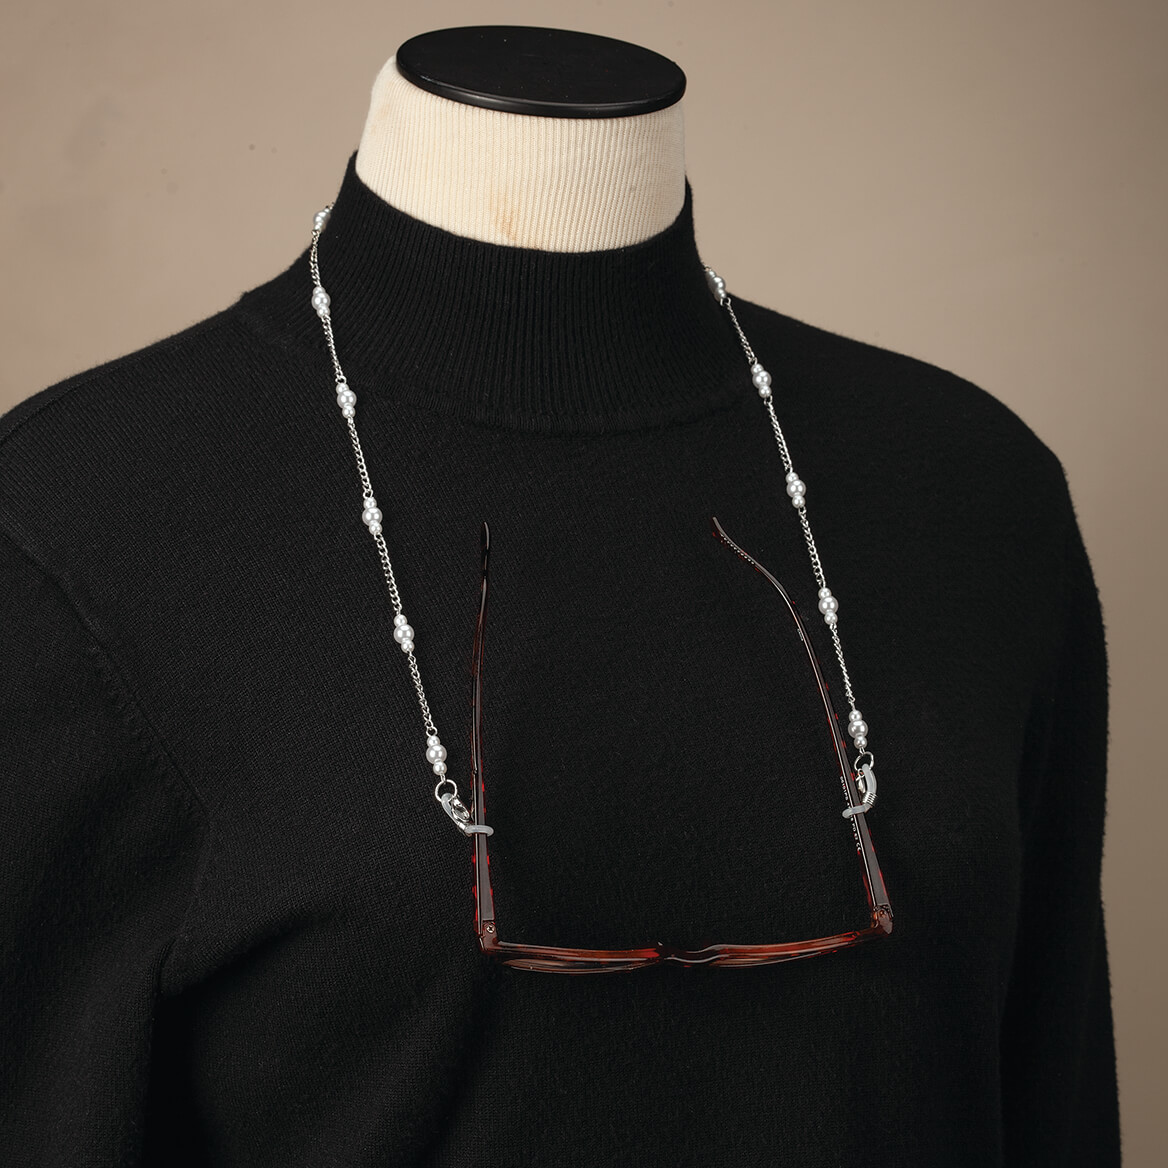 Eyeglass & Mask Chain with Pearl Accents-371966